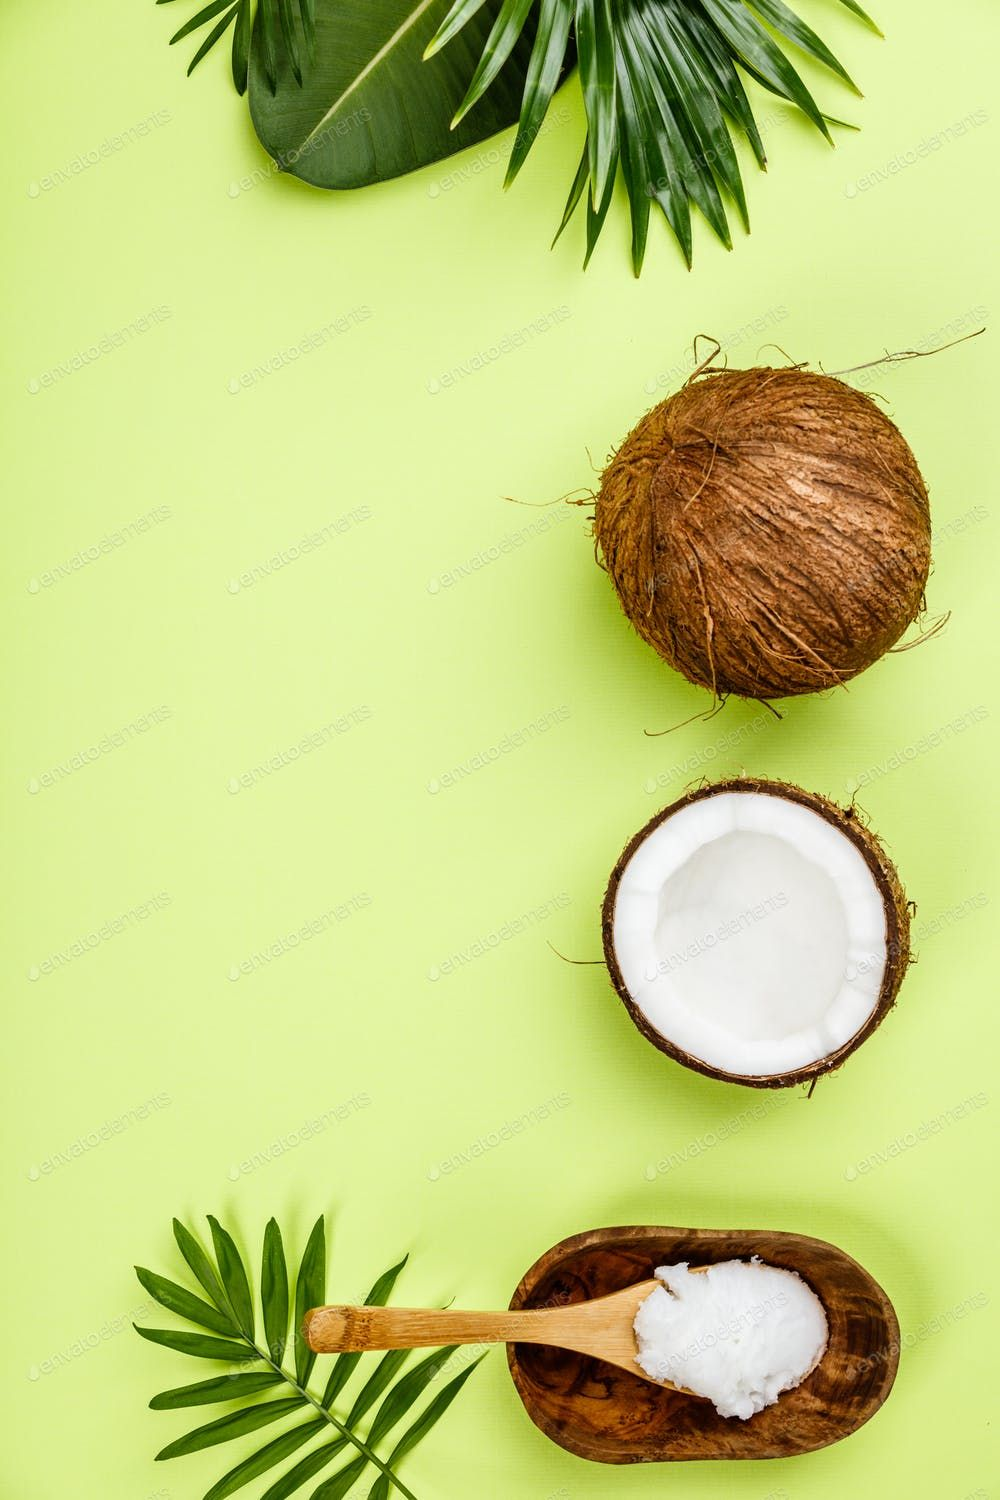 Coconut Oil Tropical Leaves And Fresh Coconuts By Klenova S